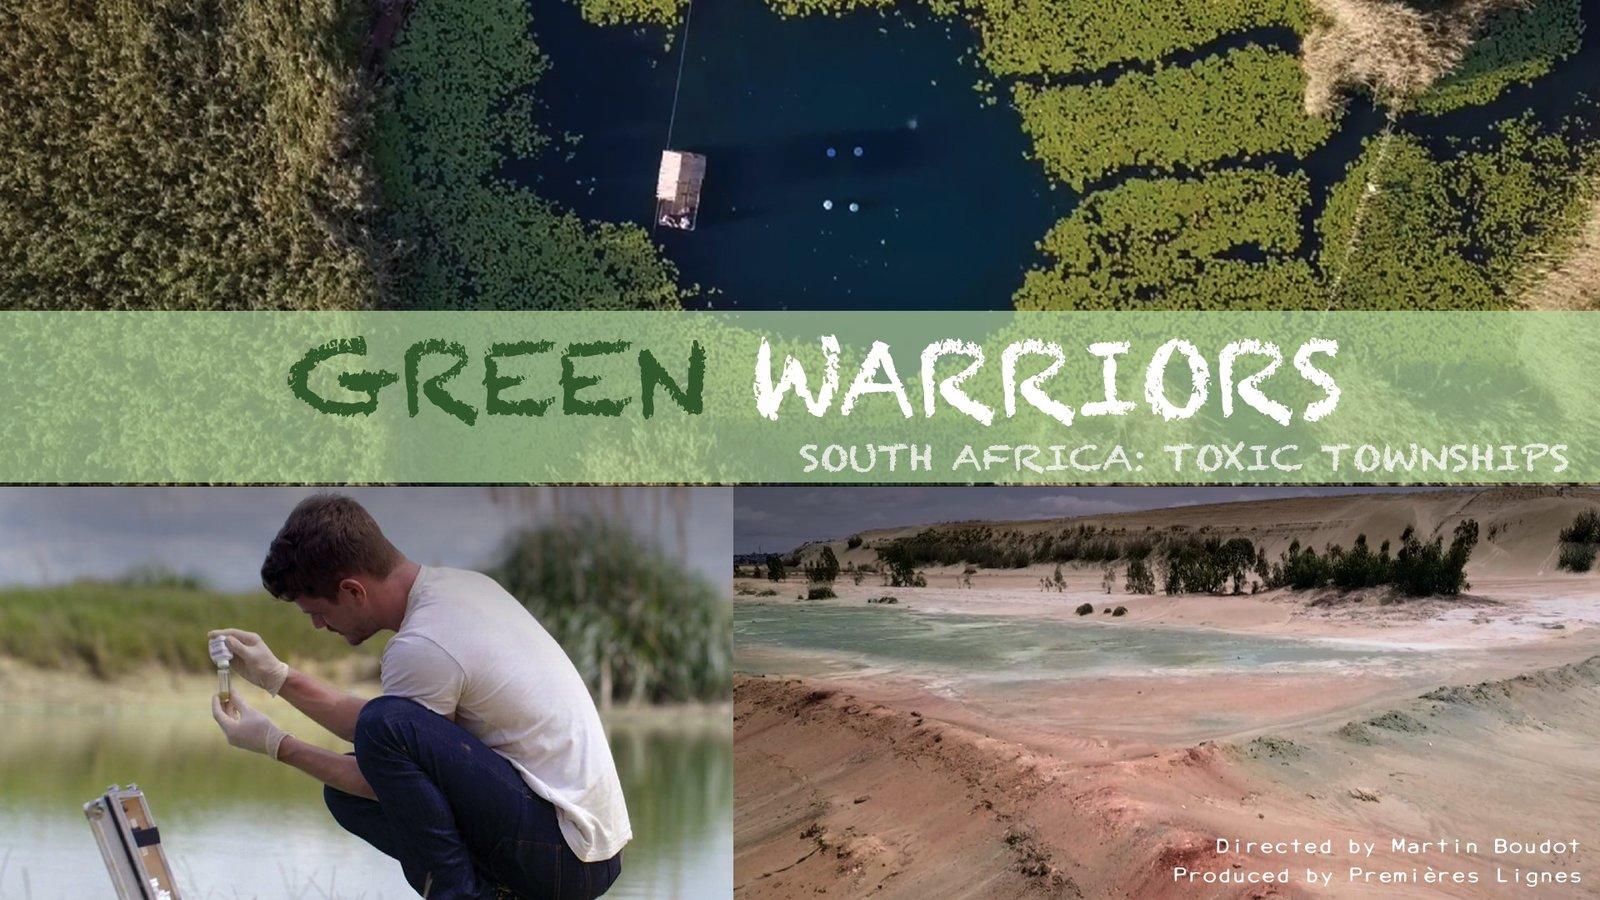 Green Warriors: South Africa's Toxic Townships